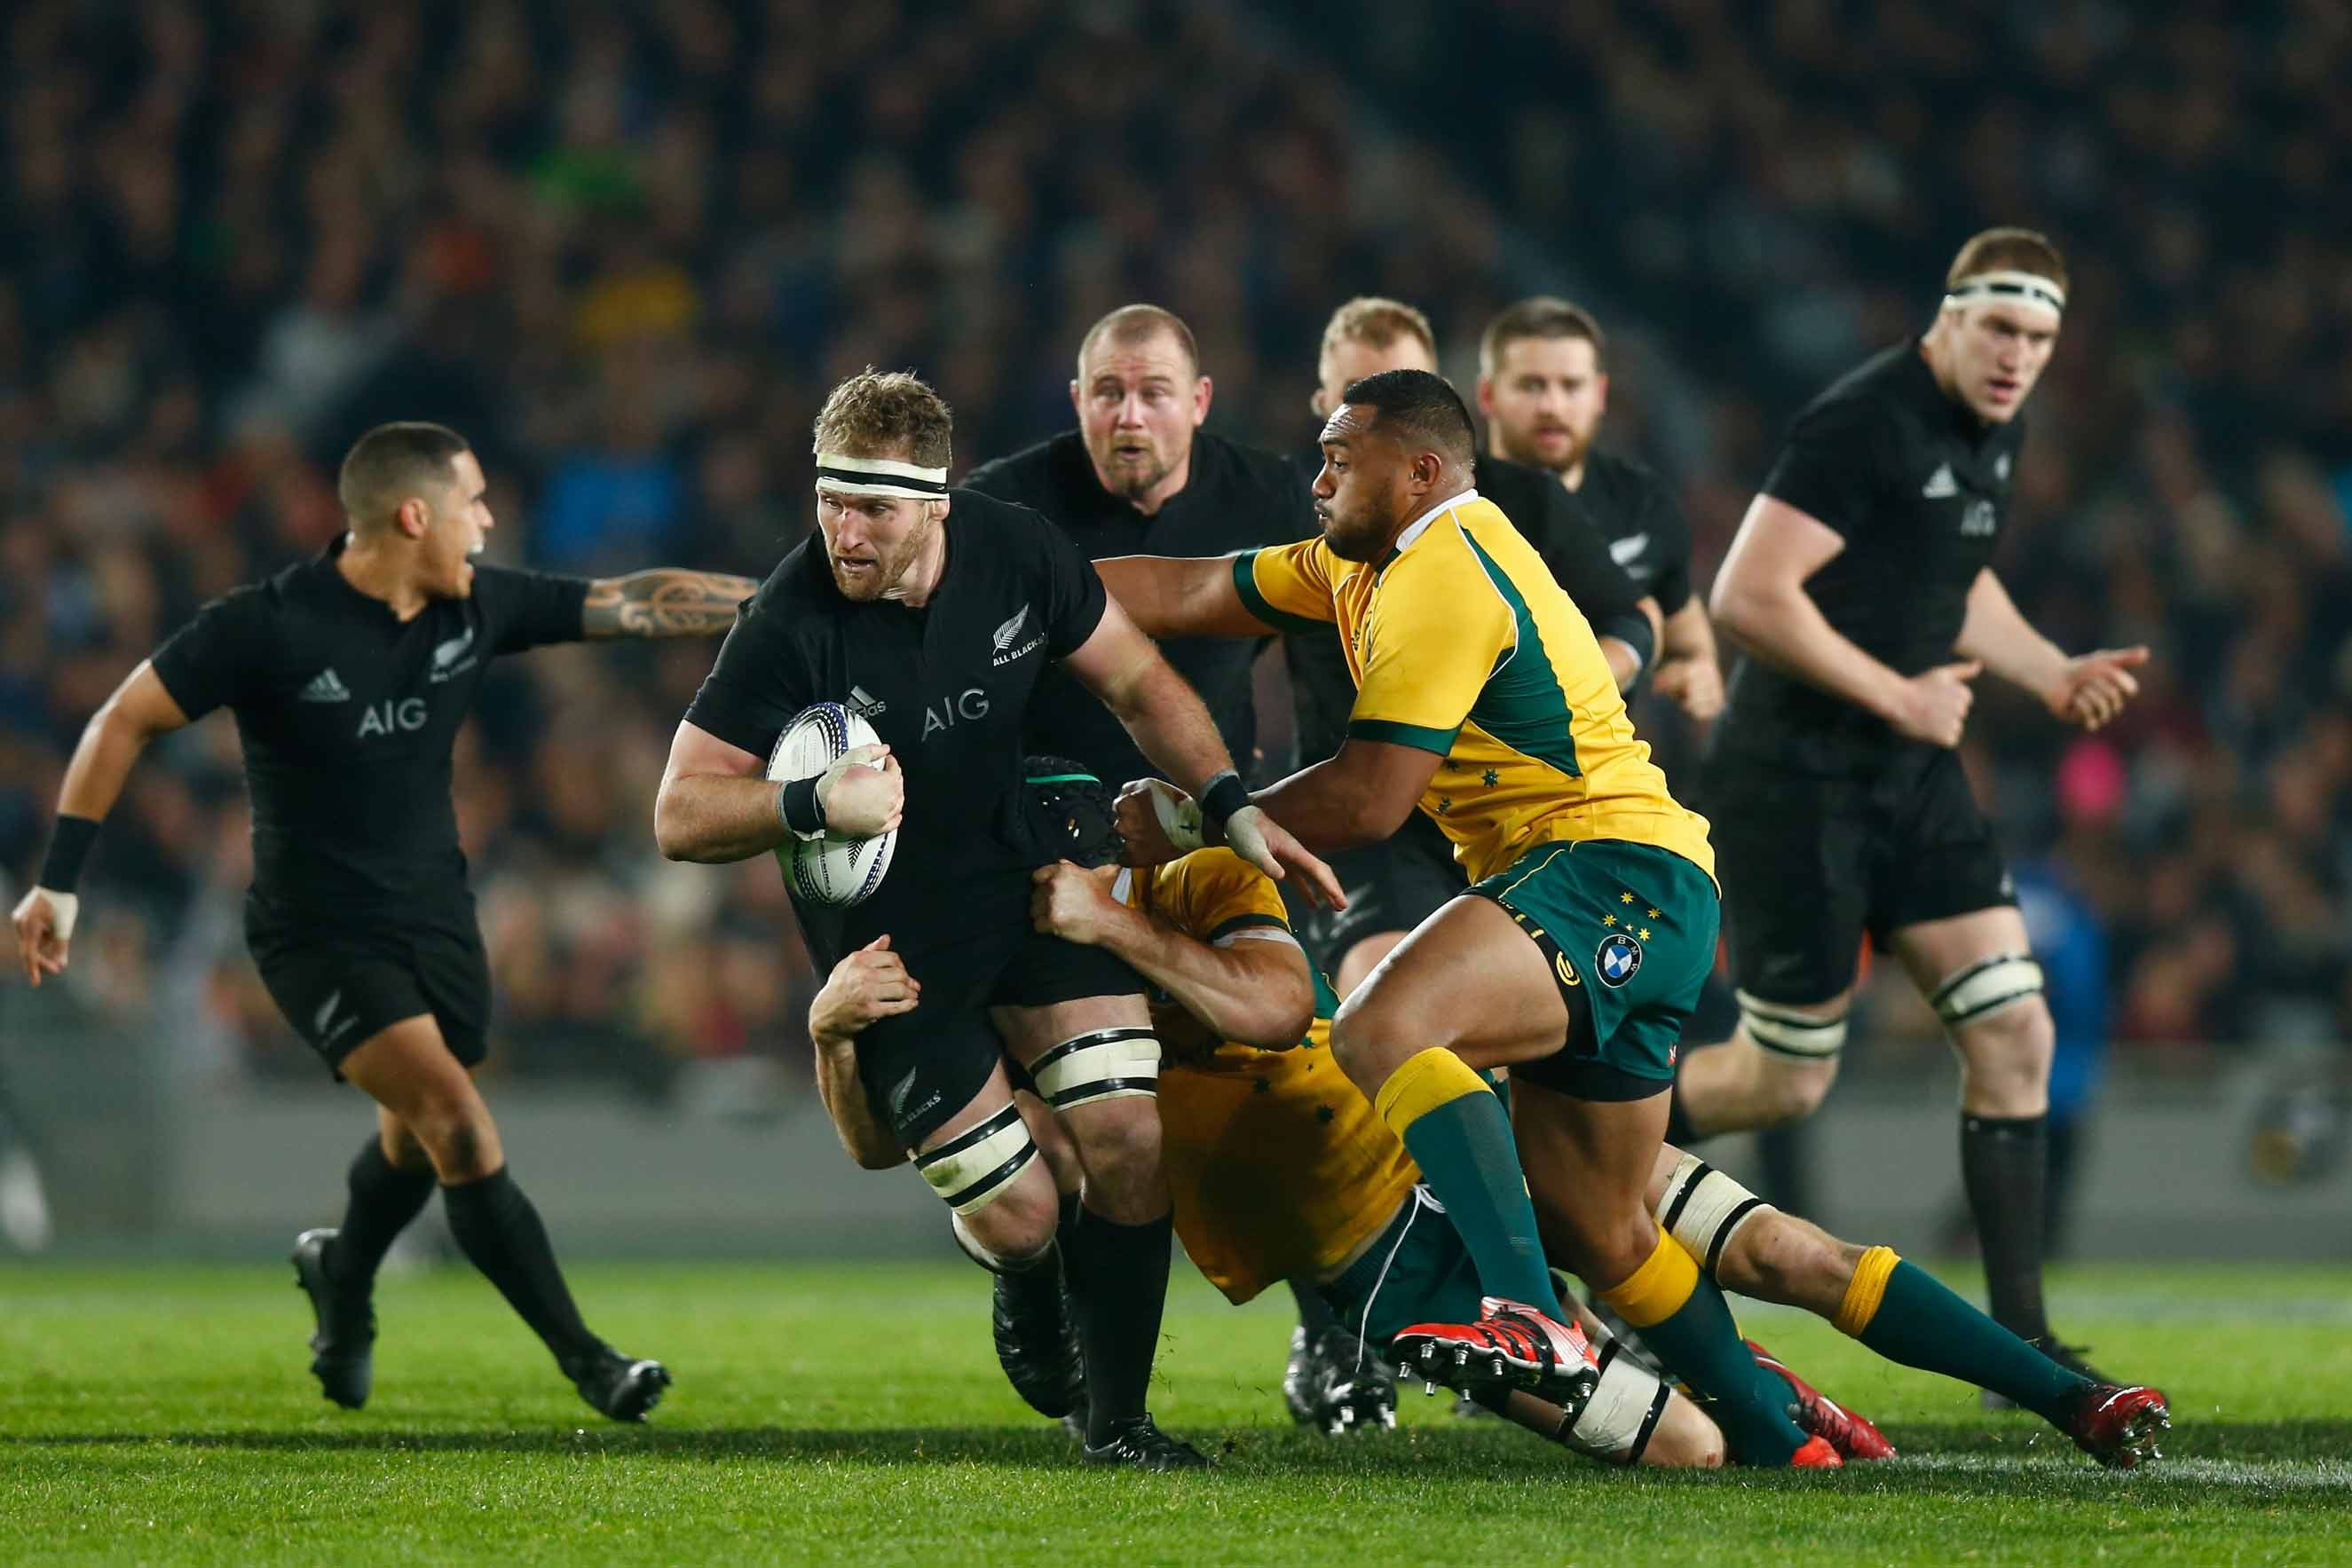 Kieran Read of the All Blacks is tackled  during The Rugby Championship, Bledisloe Cup match between the New Zealand All Blacks and the Australian Wallabies at Eden Park on Aug. 15, 2015 in Auckland.